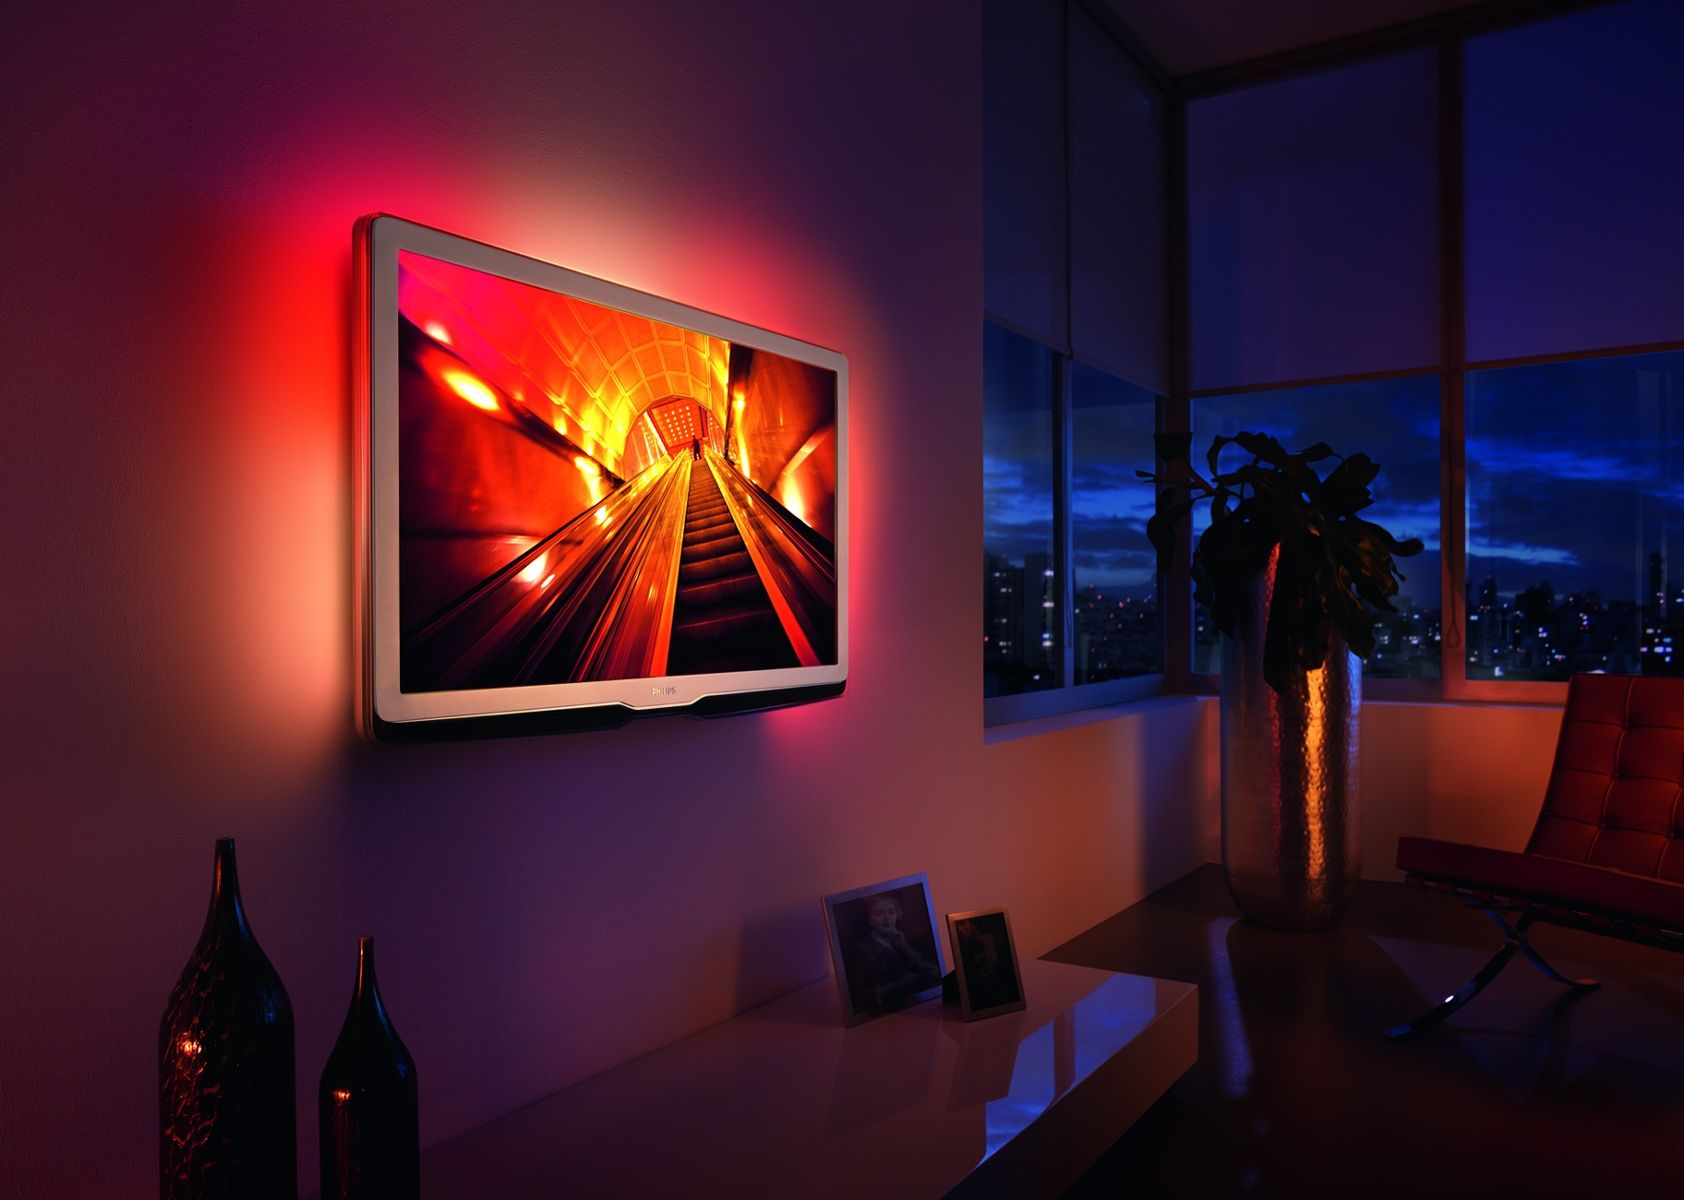 Led strip lights behind tv led lights pinterest led strip led strip lights behind tv mozeypictures Choice Image